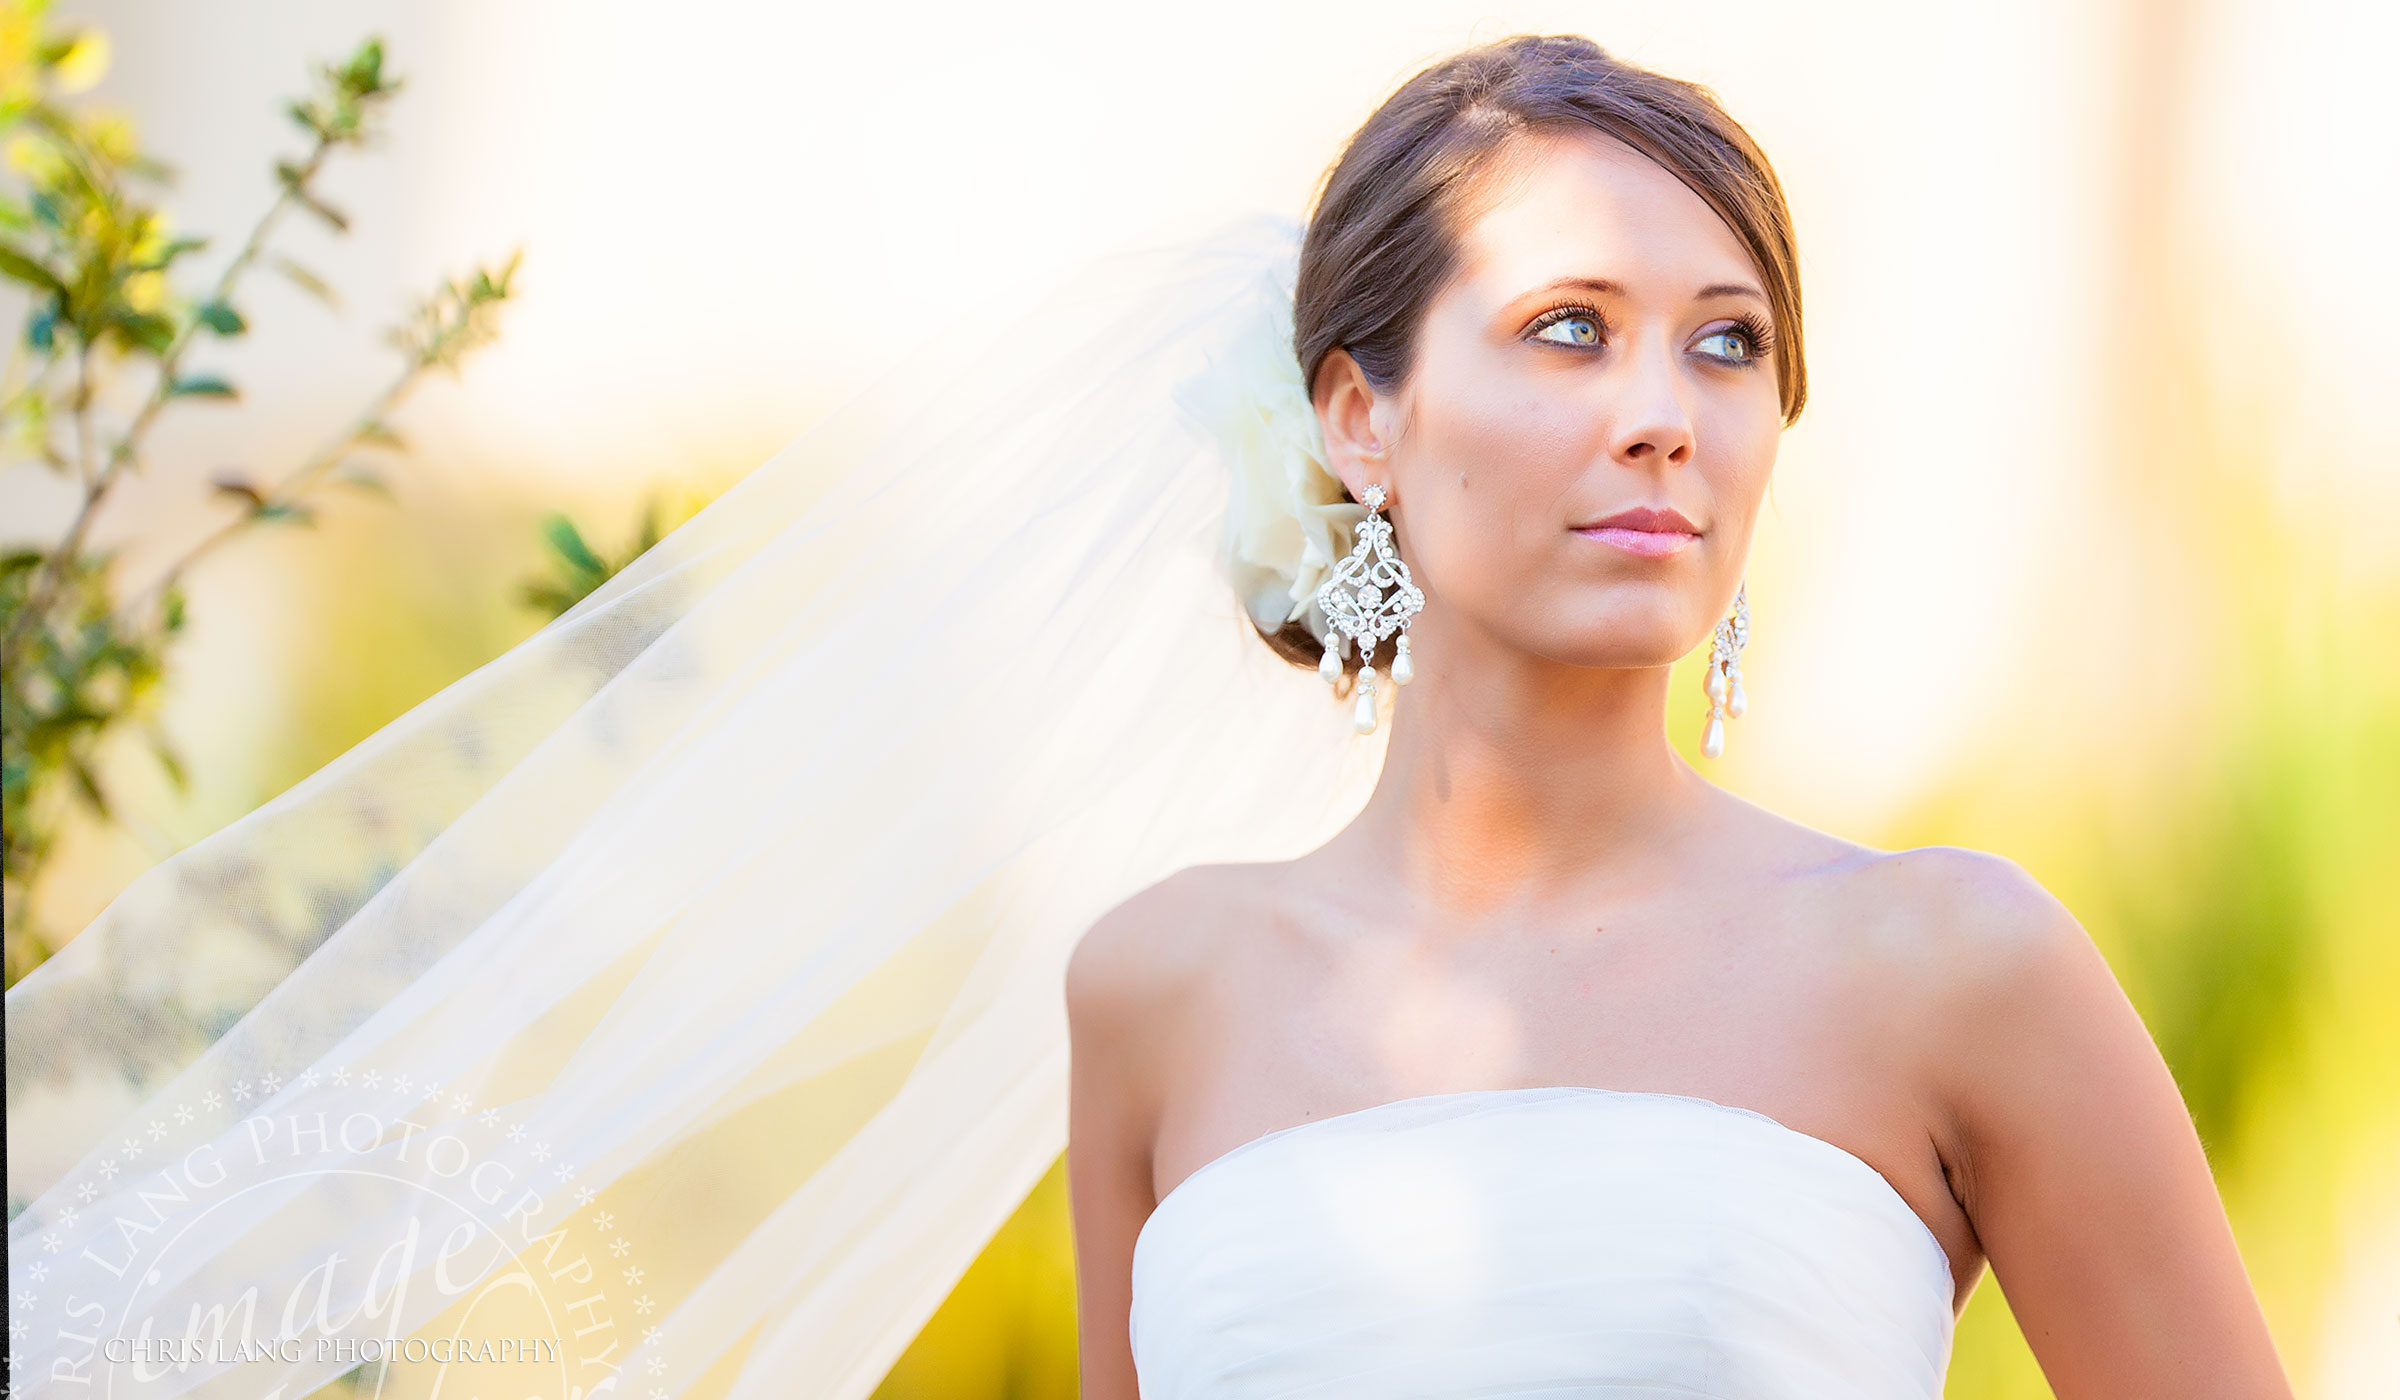 Bridal picture with a bride under her wedding vail. Bridal pictrure ideas. Wilmington NC Photographer